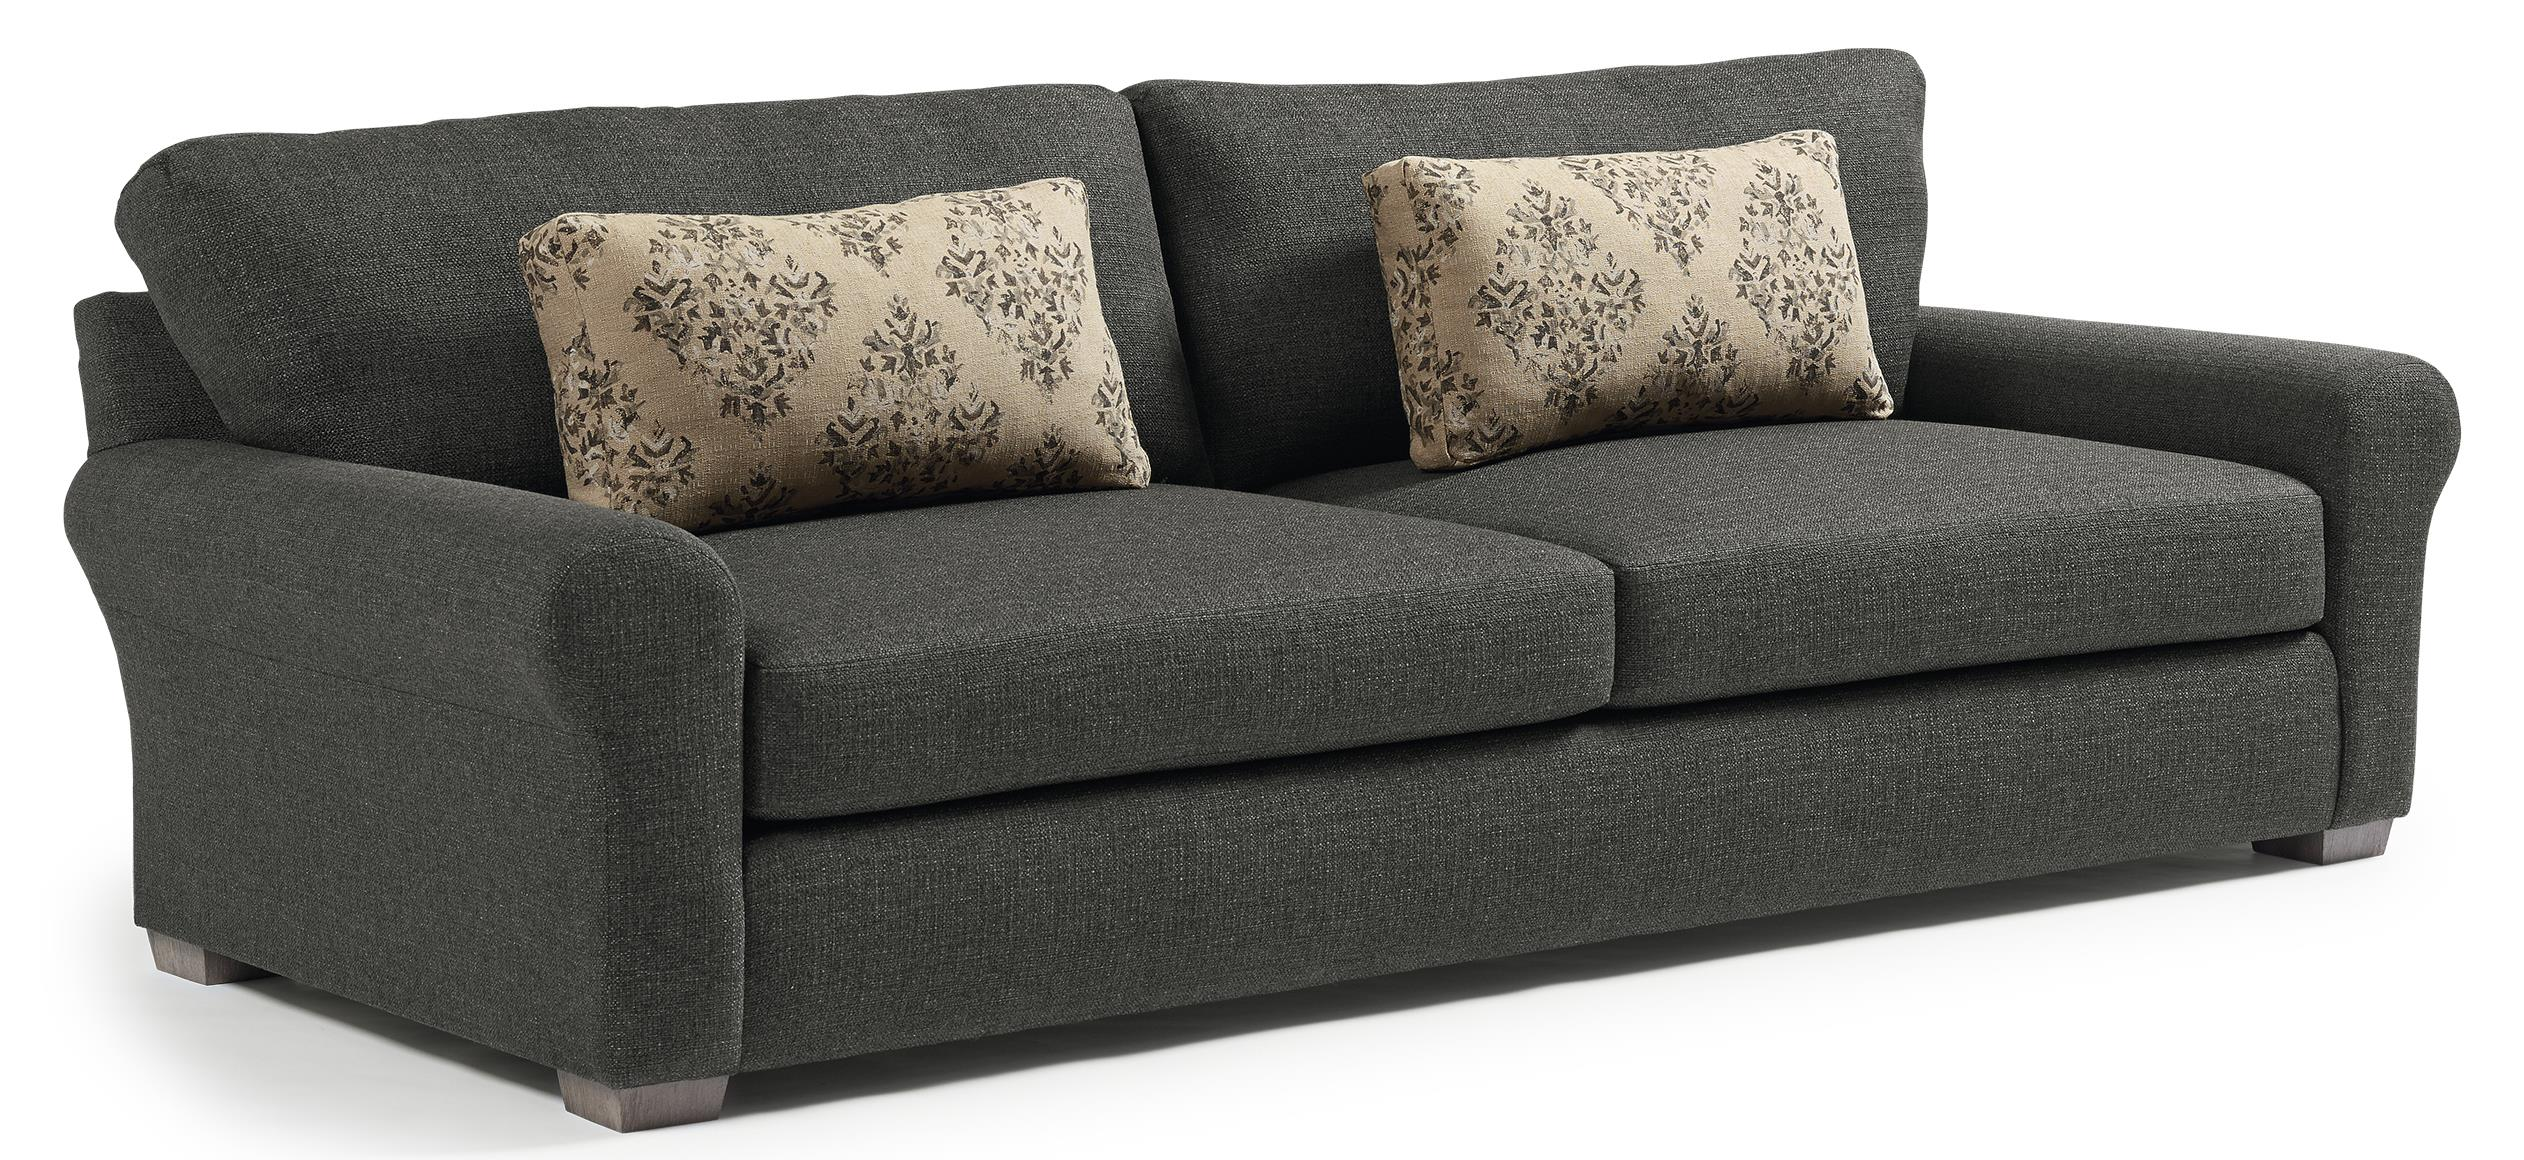 Big Cushion Sofa Best Home Furnishings Sophia S69 Transitional Wide Sofa